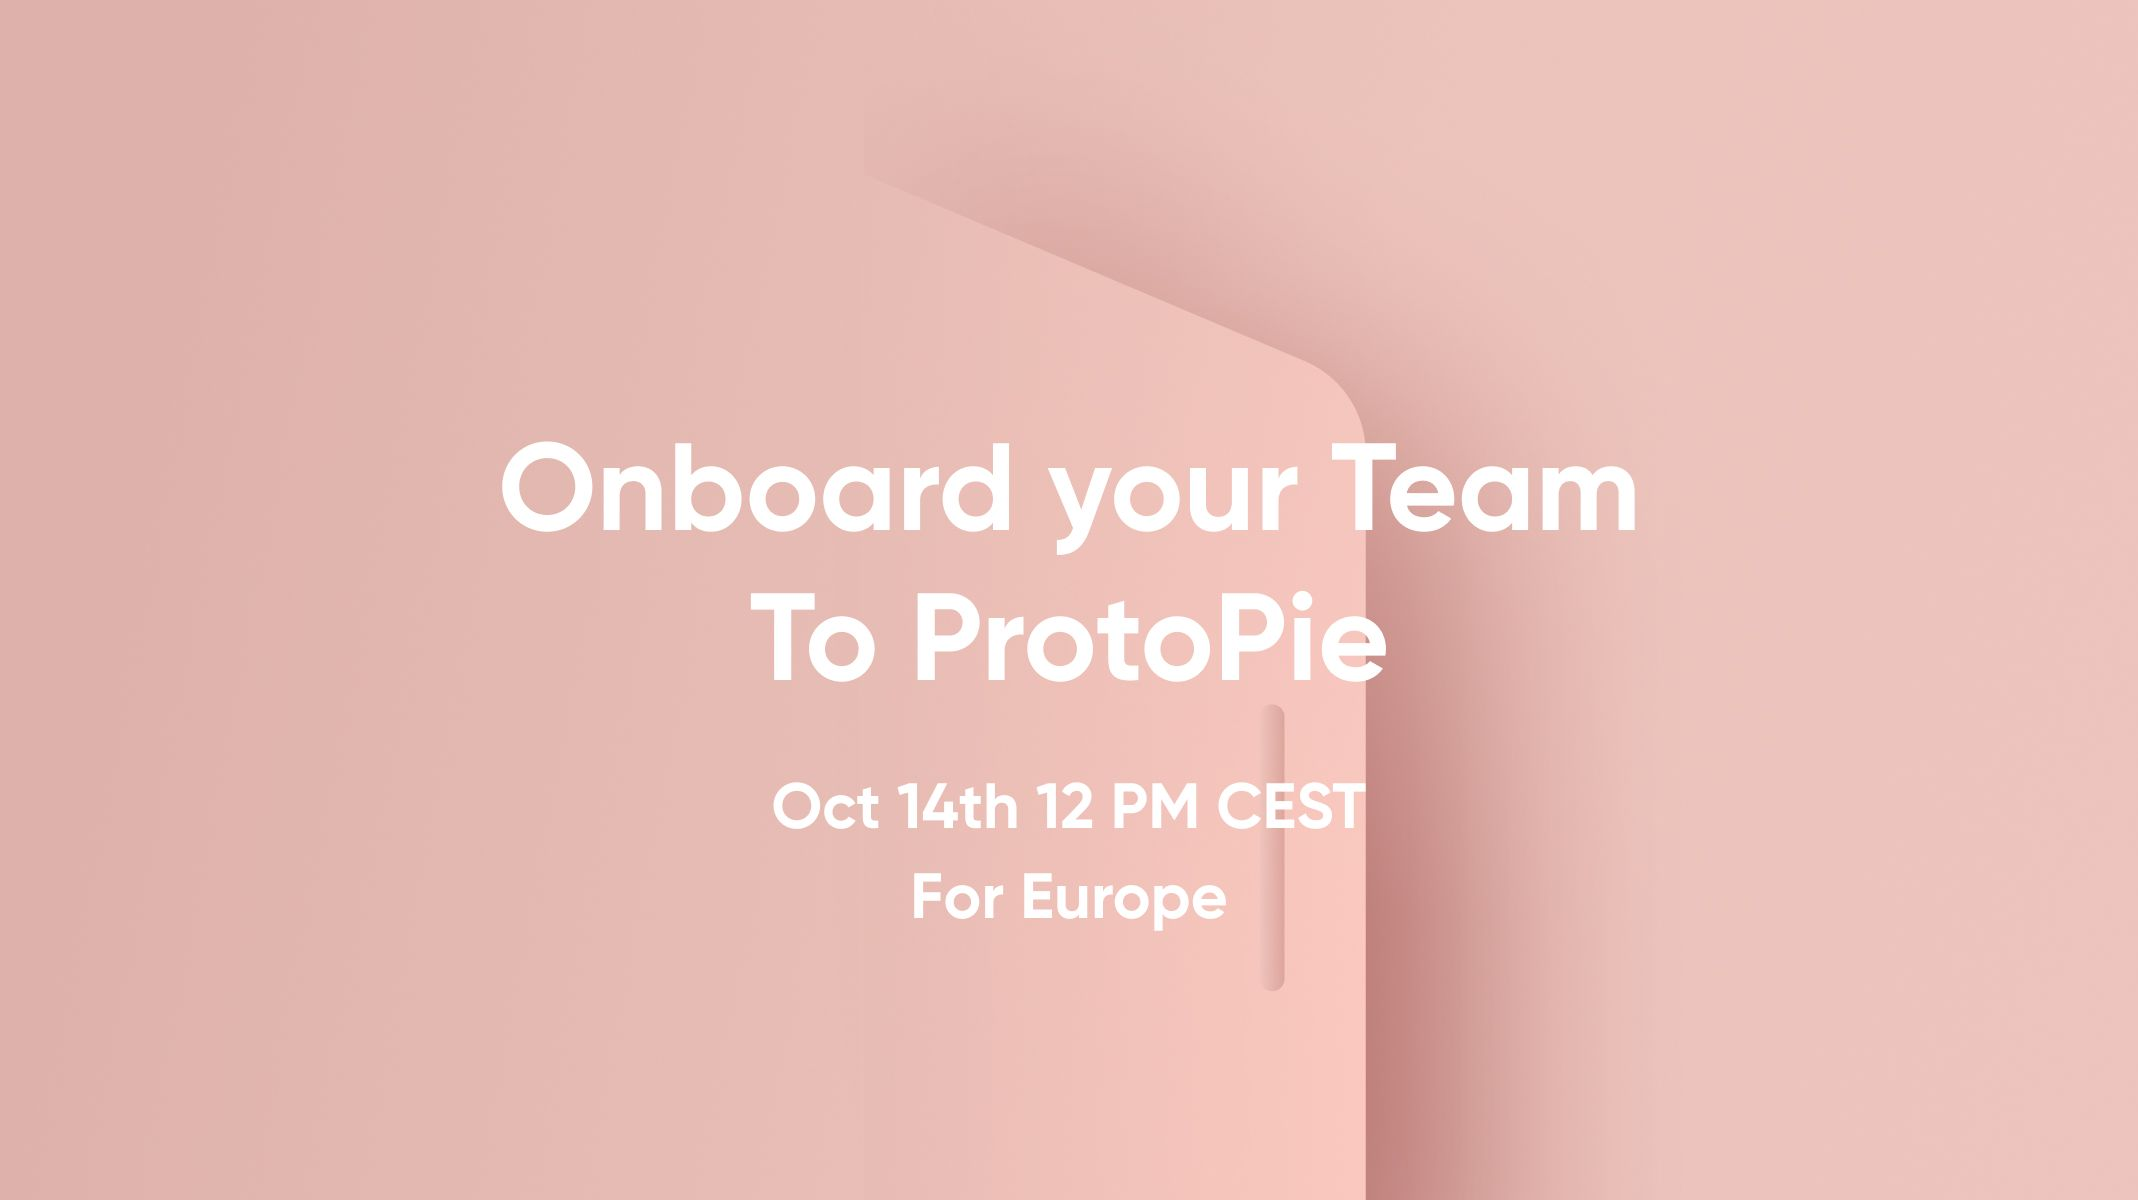 Onboard your Team To ProtoPie Europe Workshop Thumbnail